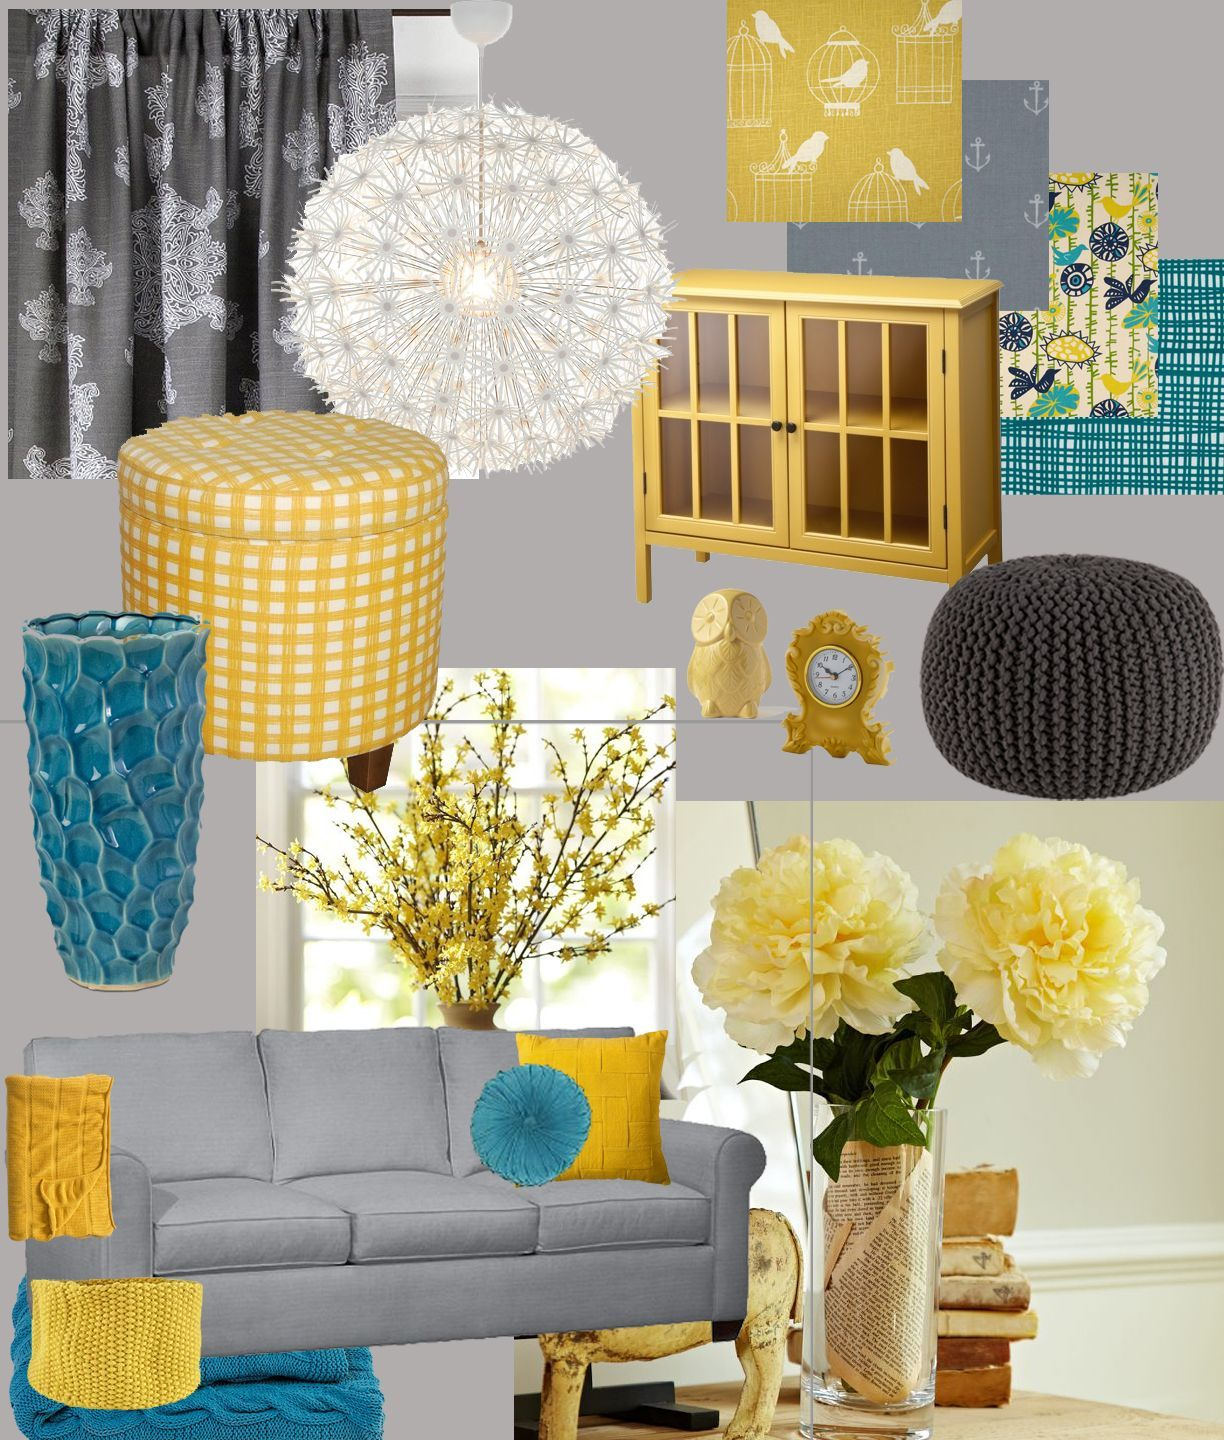 10 Teal And Yellow Bedroom Ideas Most Incredible Also Interesting Living Room Rooms Design Board